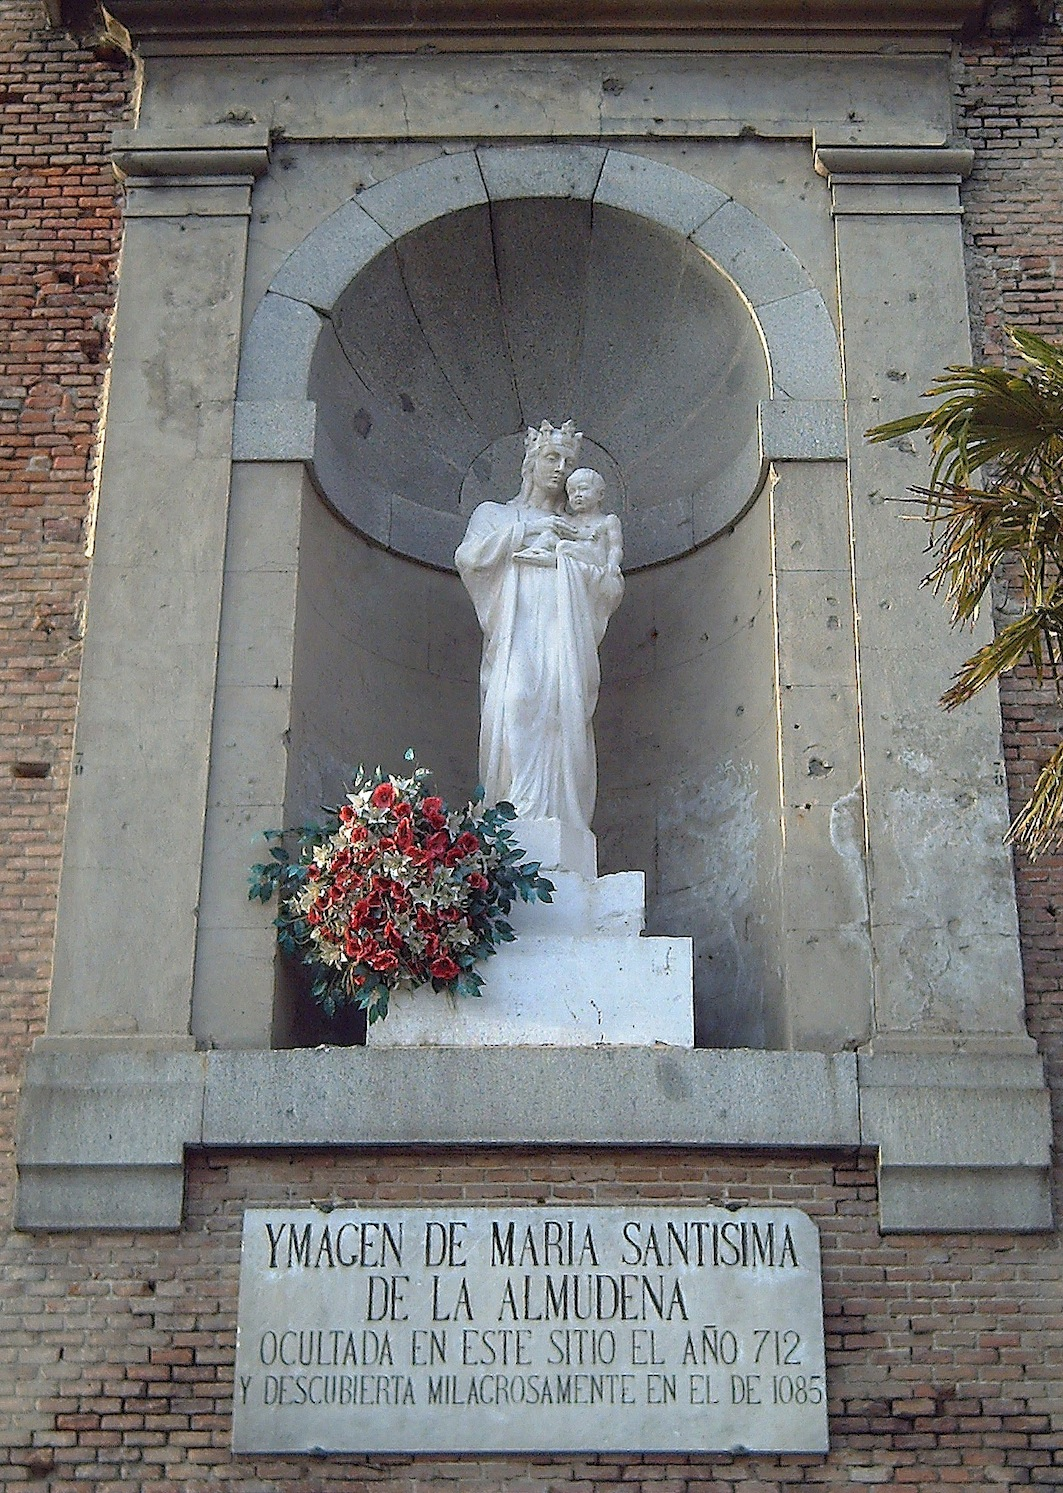 Image of the Virgin Mary on the rear wall of the Almudena Cathedral in Madrid